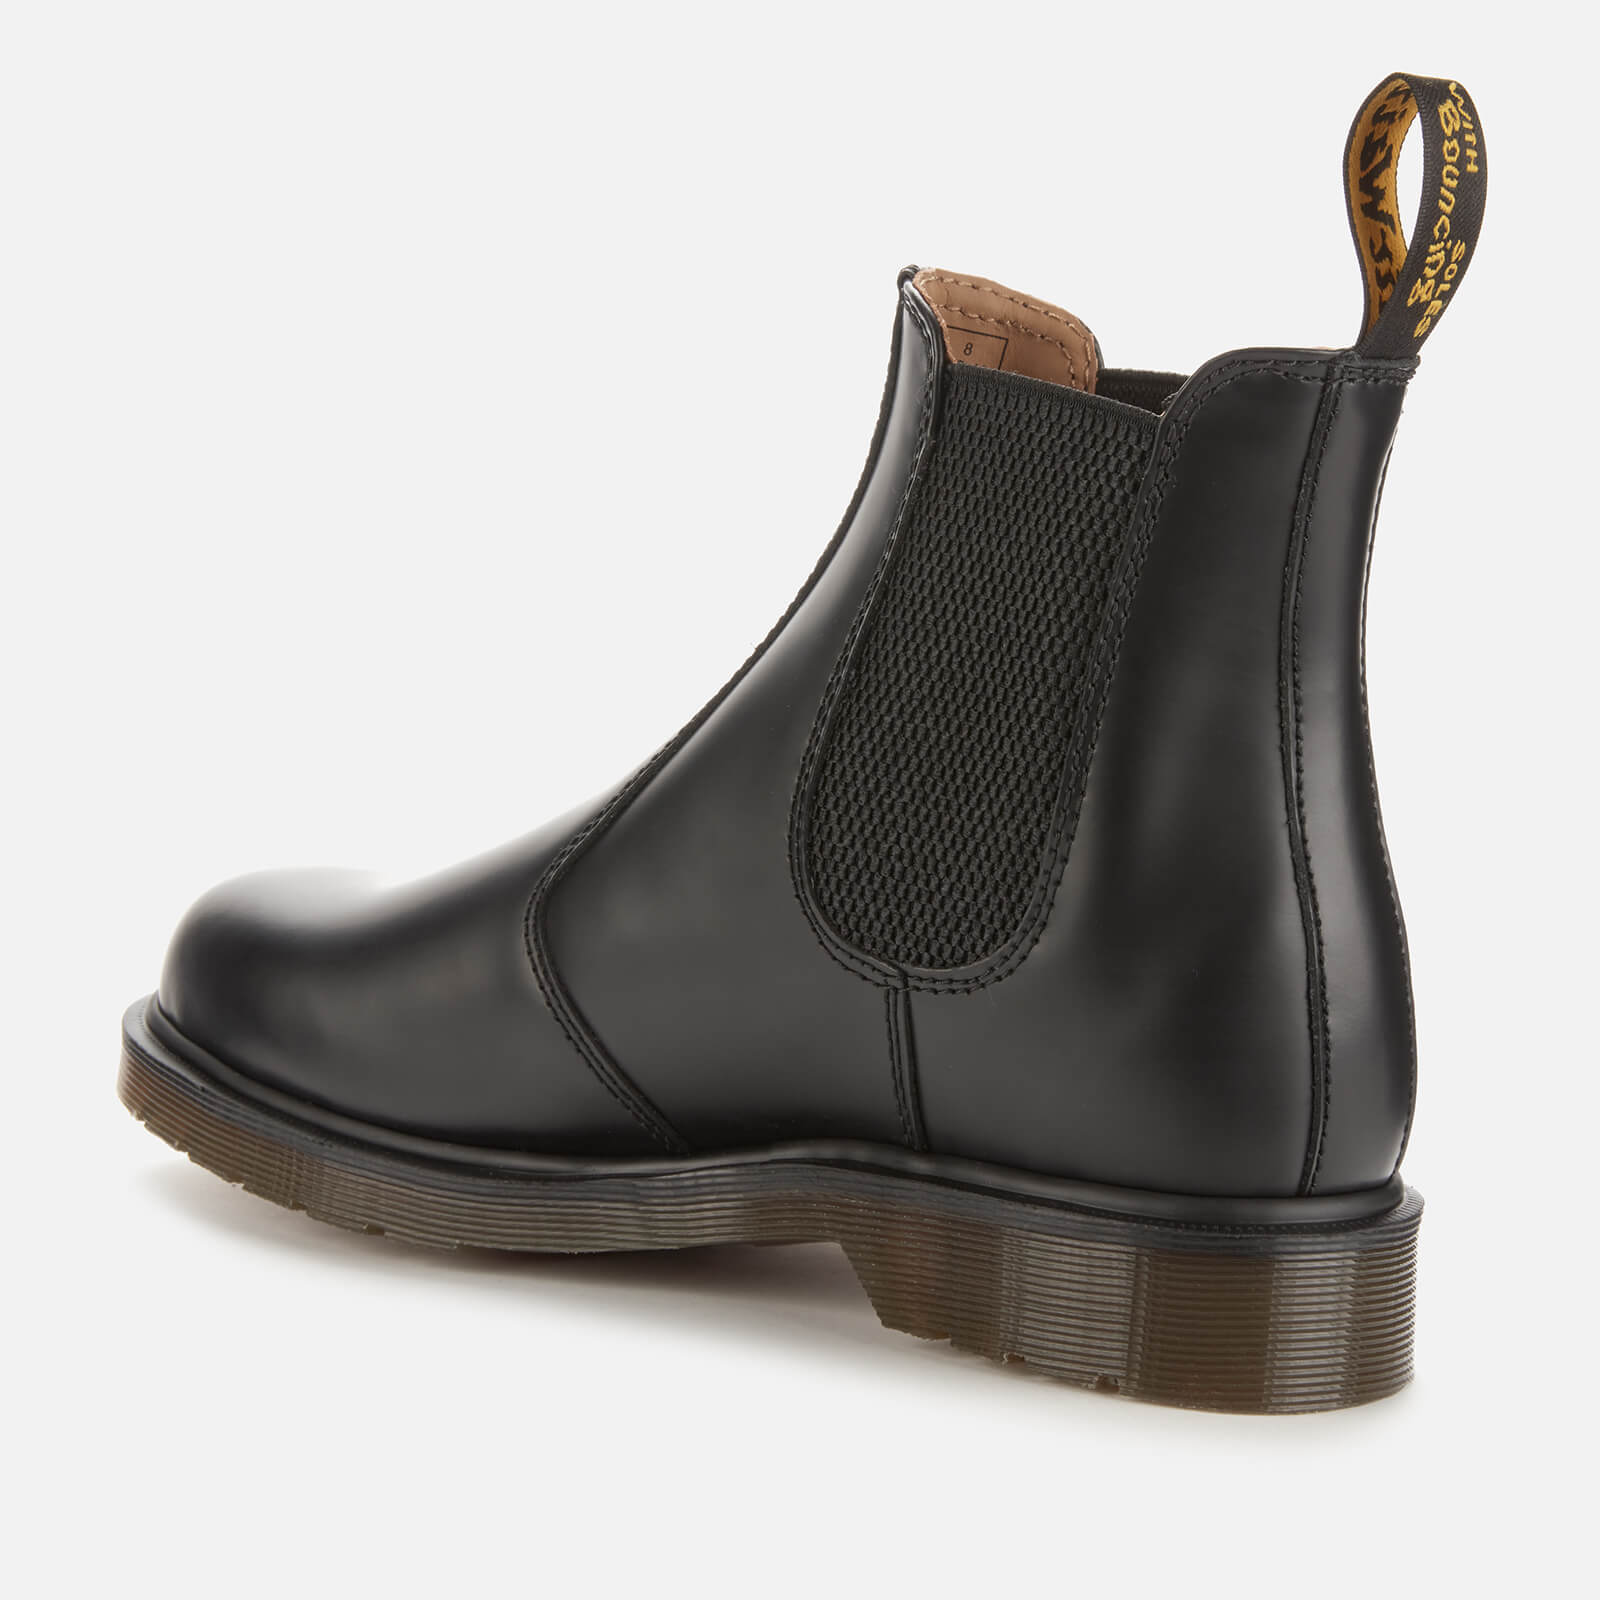 Dr. Martens Women's 2976 Smooth Leather Chelsea Boots - Black - Uk 11